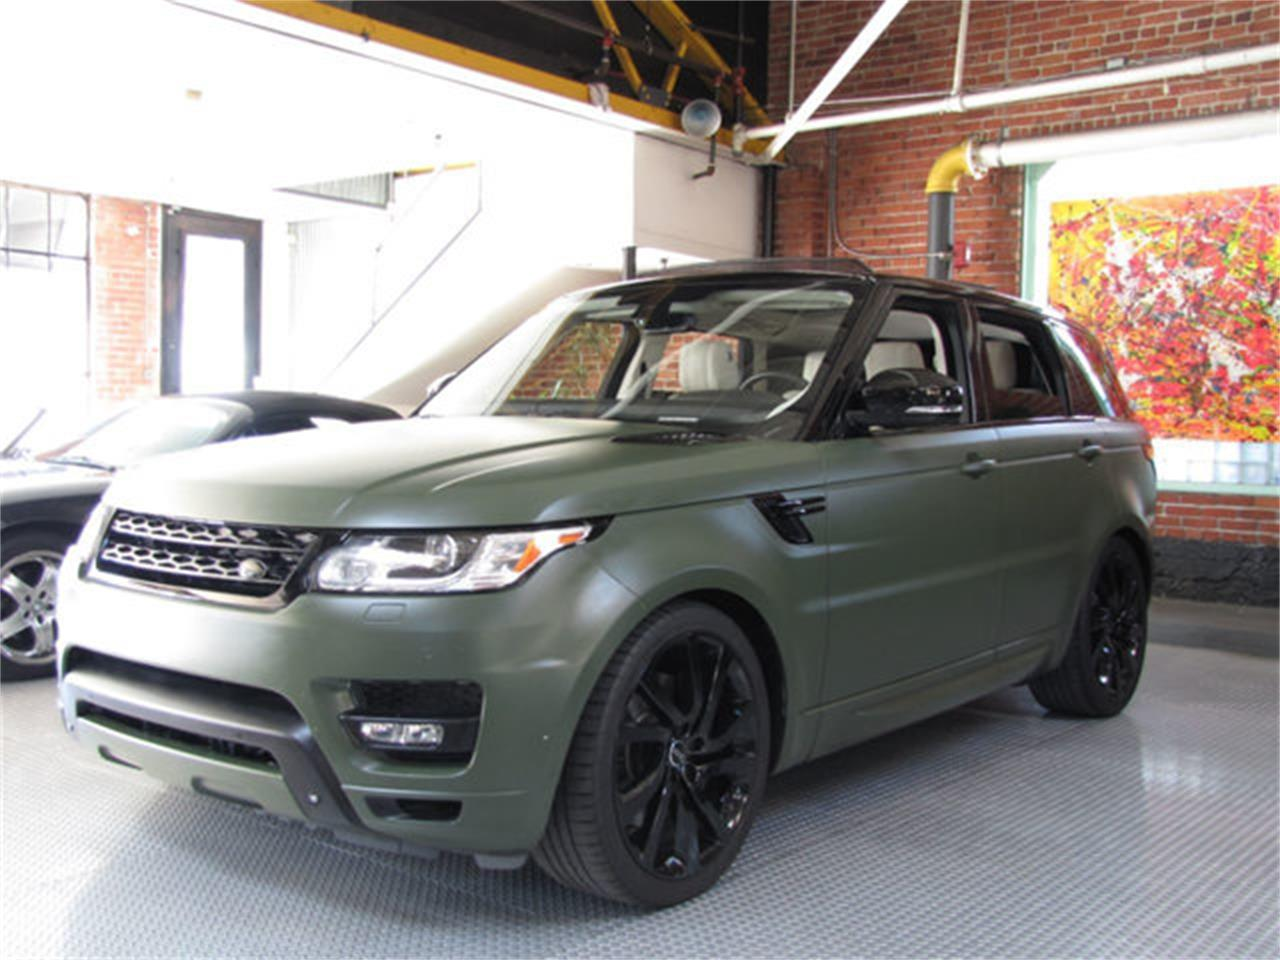 2014 Range Rover Sport For Sale >> For Sale 2014 Land Rover Range Rover Sport In Hollywood California